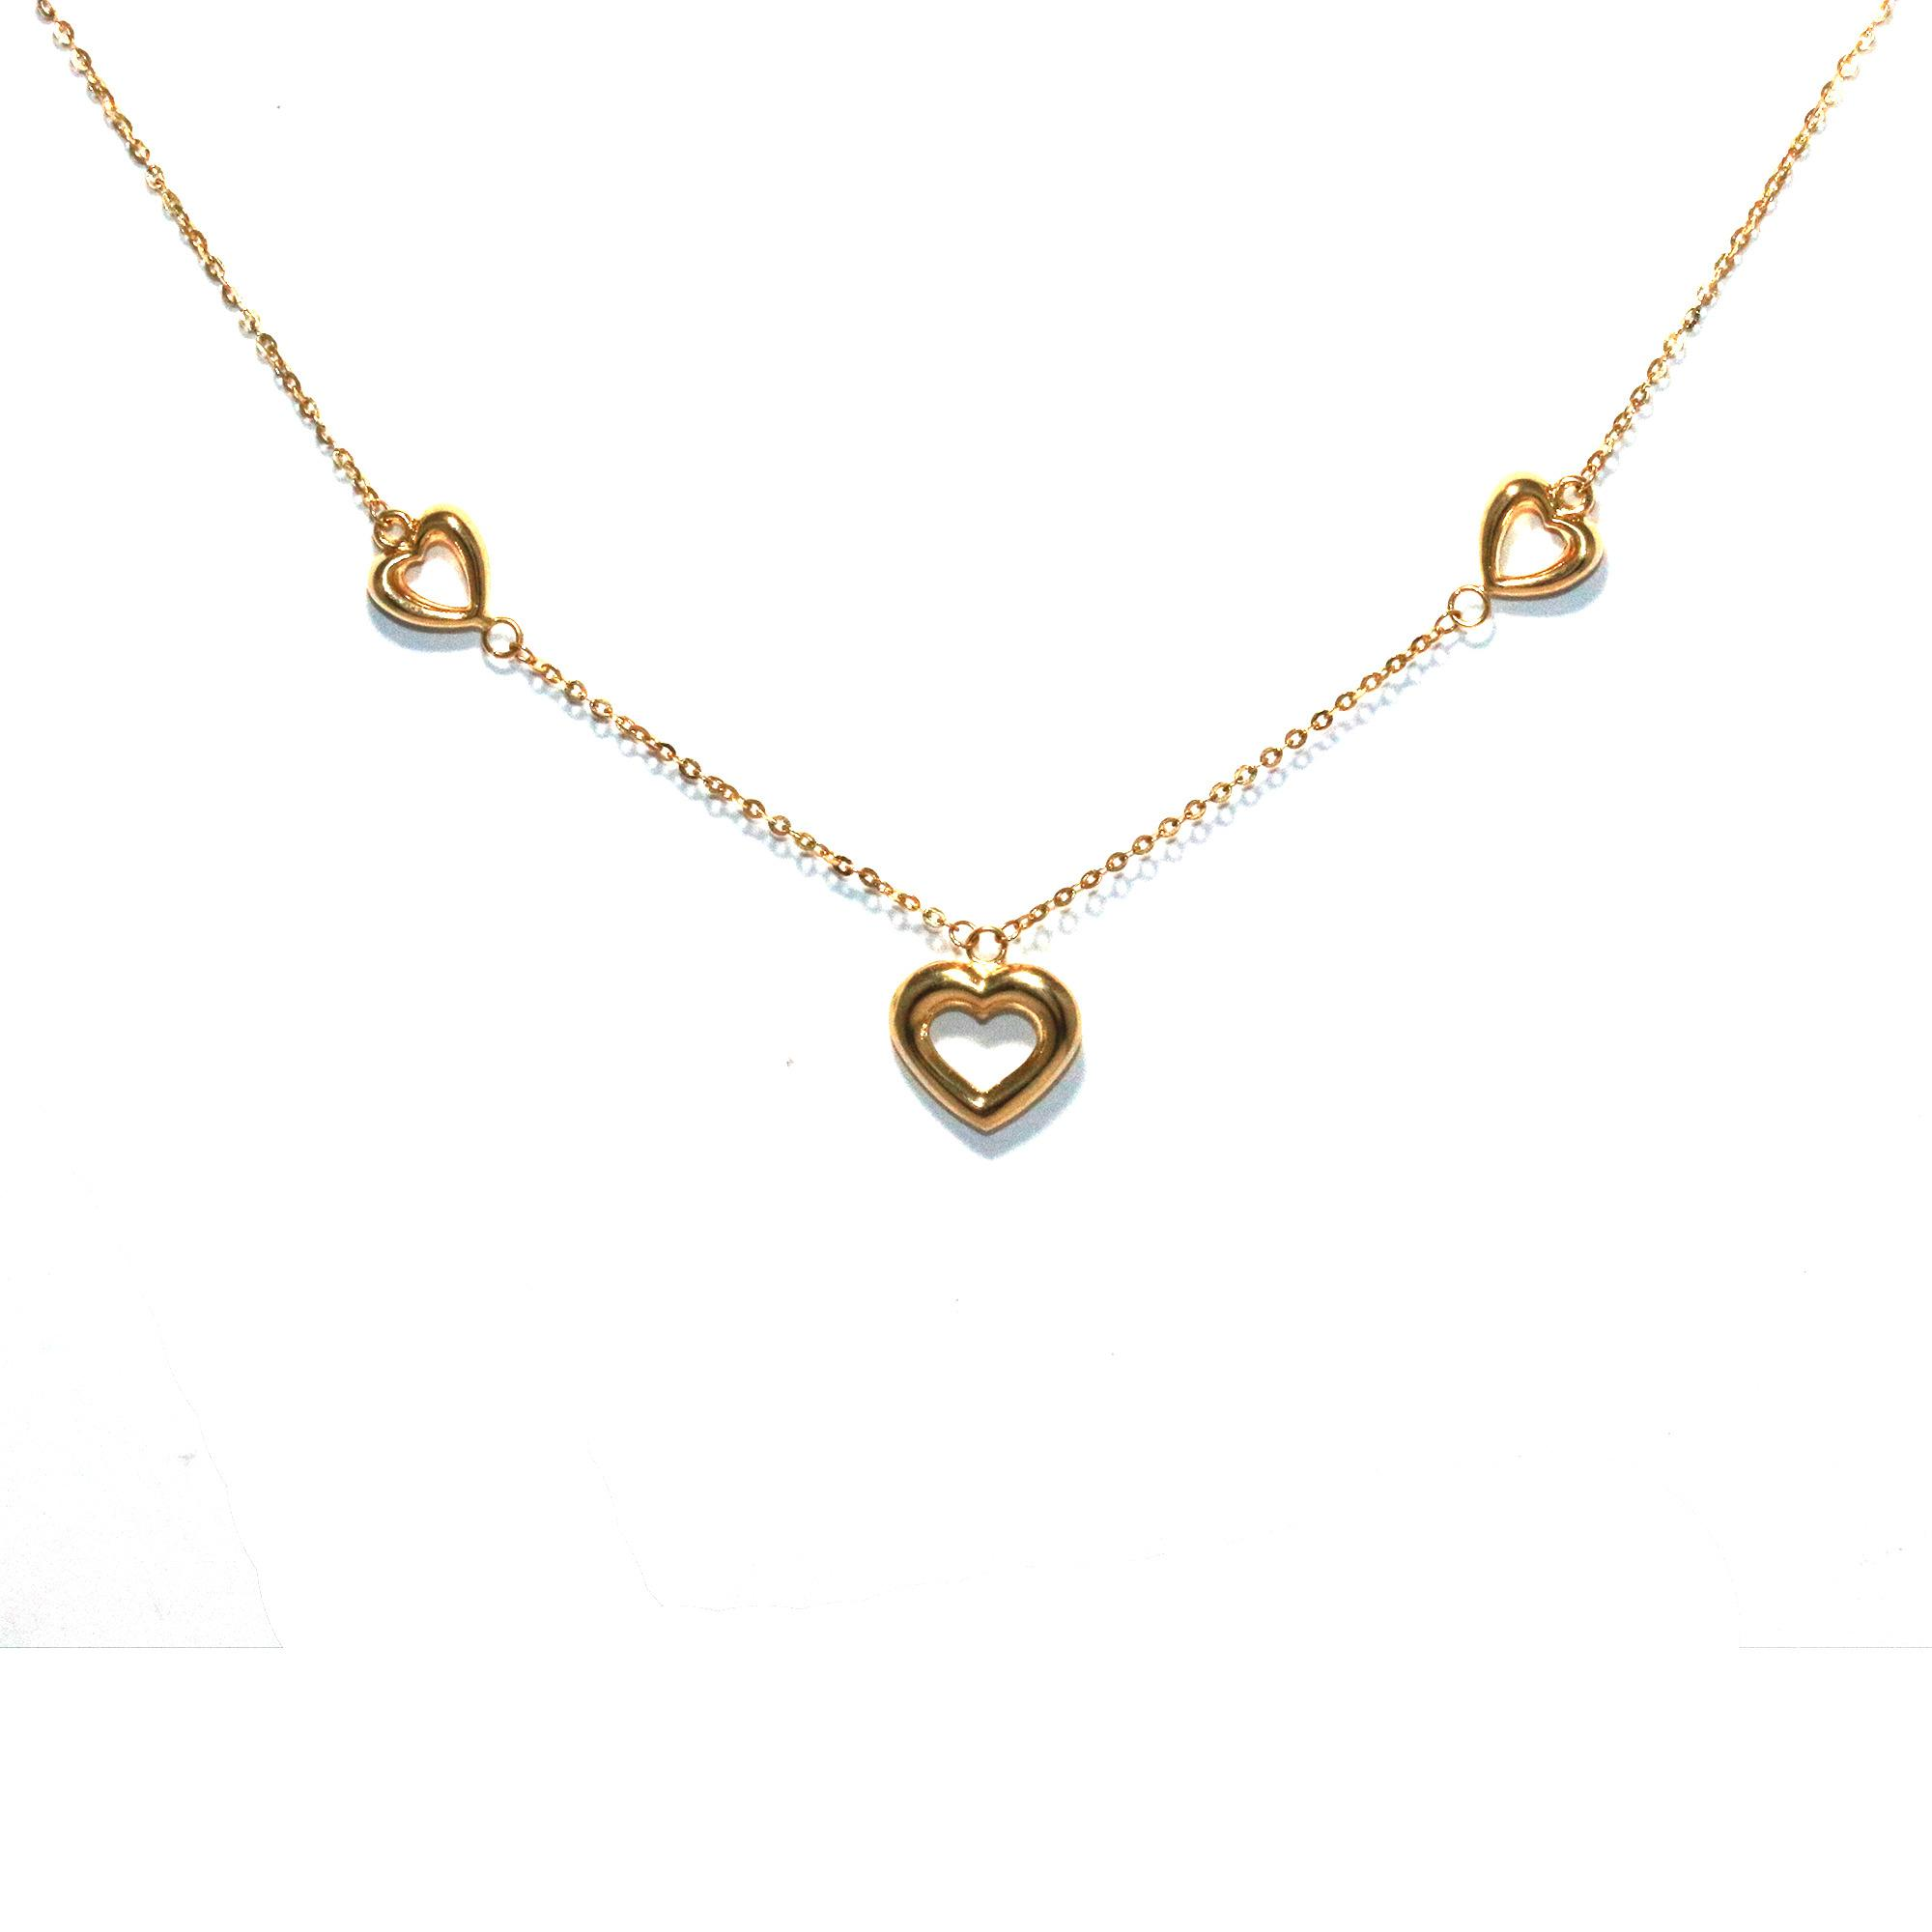 or kirsty frankly necklace gold layered rose my kirstyneckstand silver products